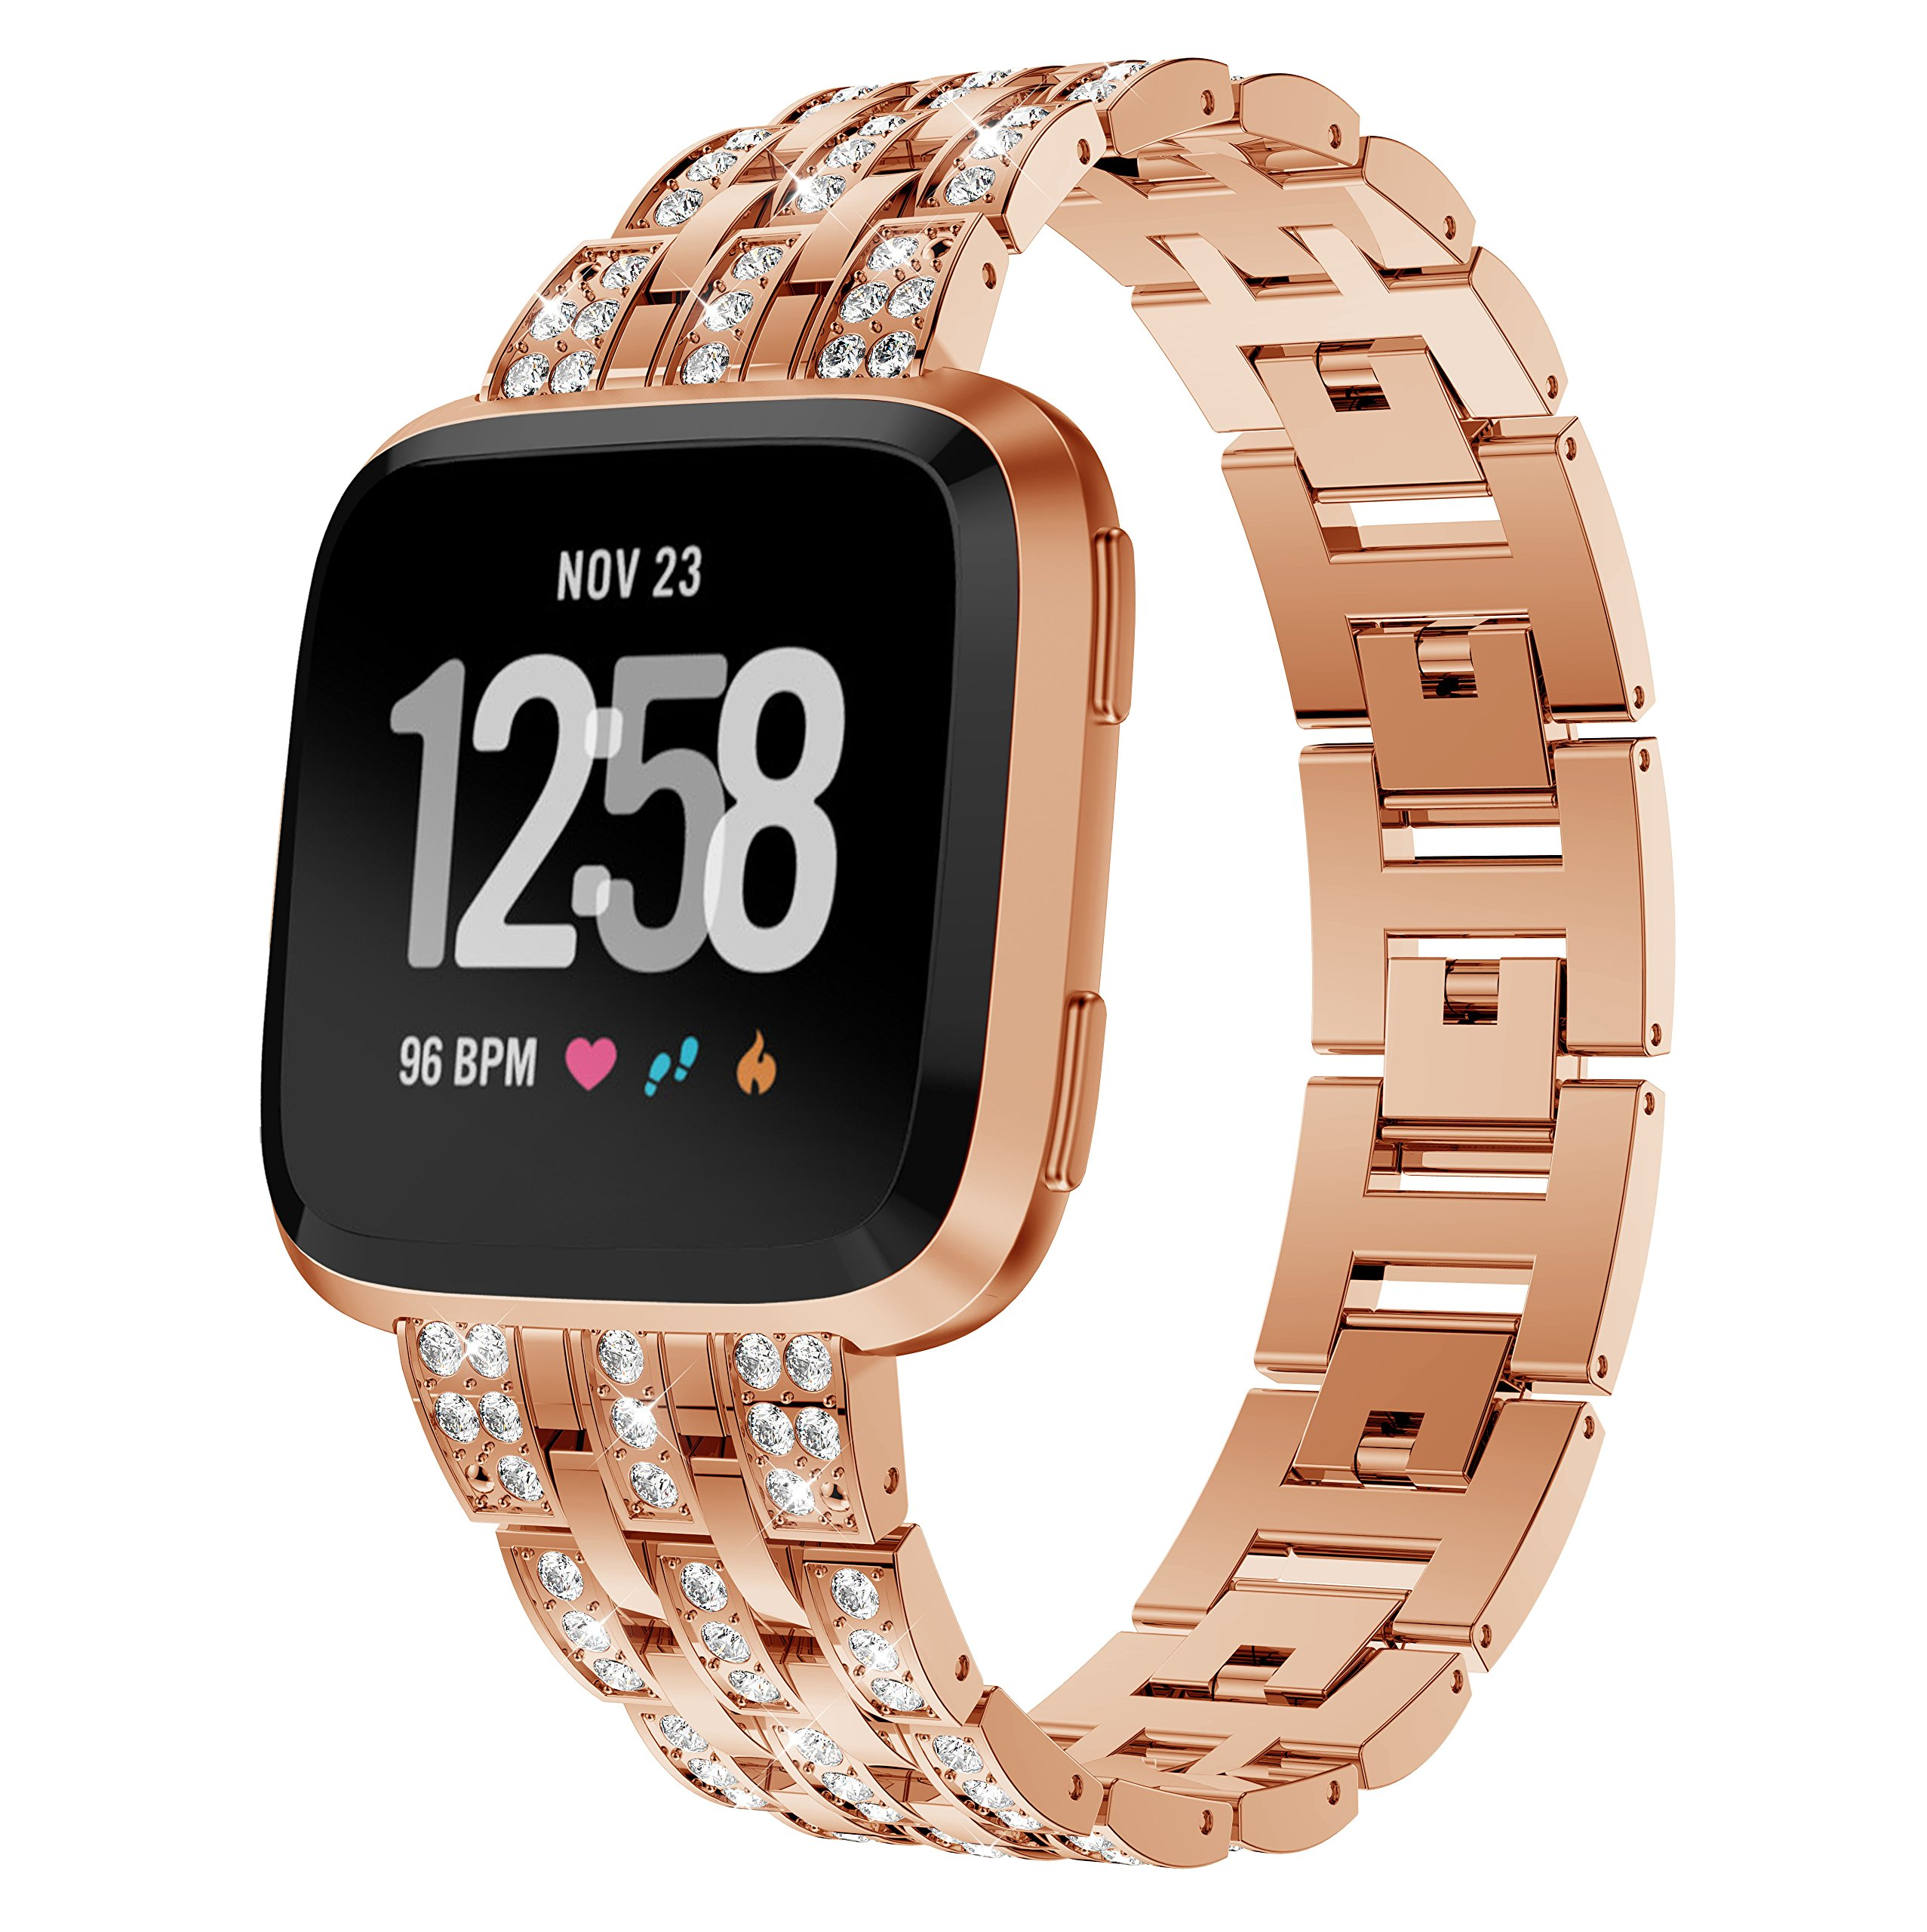 KisFace Metal Band for Fitbit Versa,Rhinestone Series Accessories Quick Release Unit Design for Fitbit Versa Band(Classic Rose Gold). by KisFace